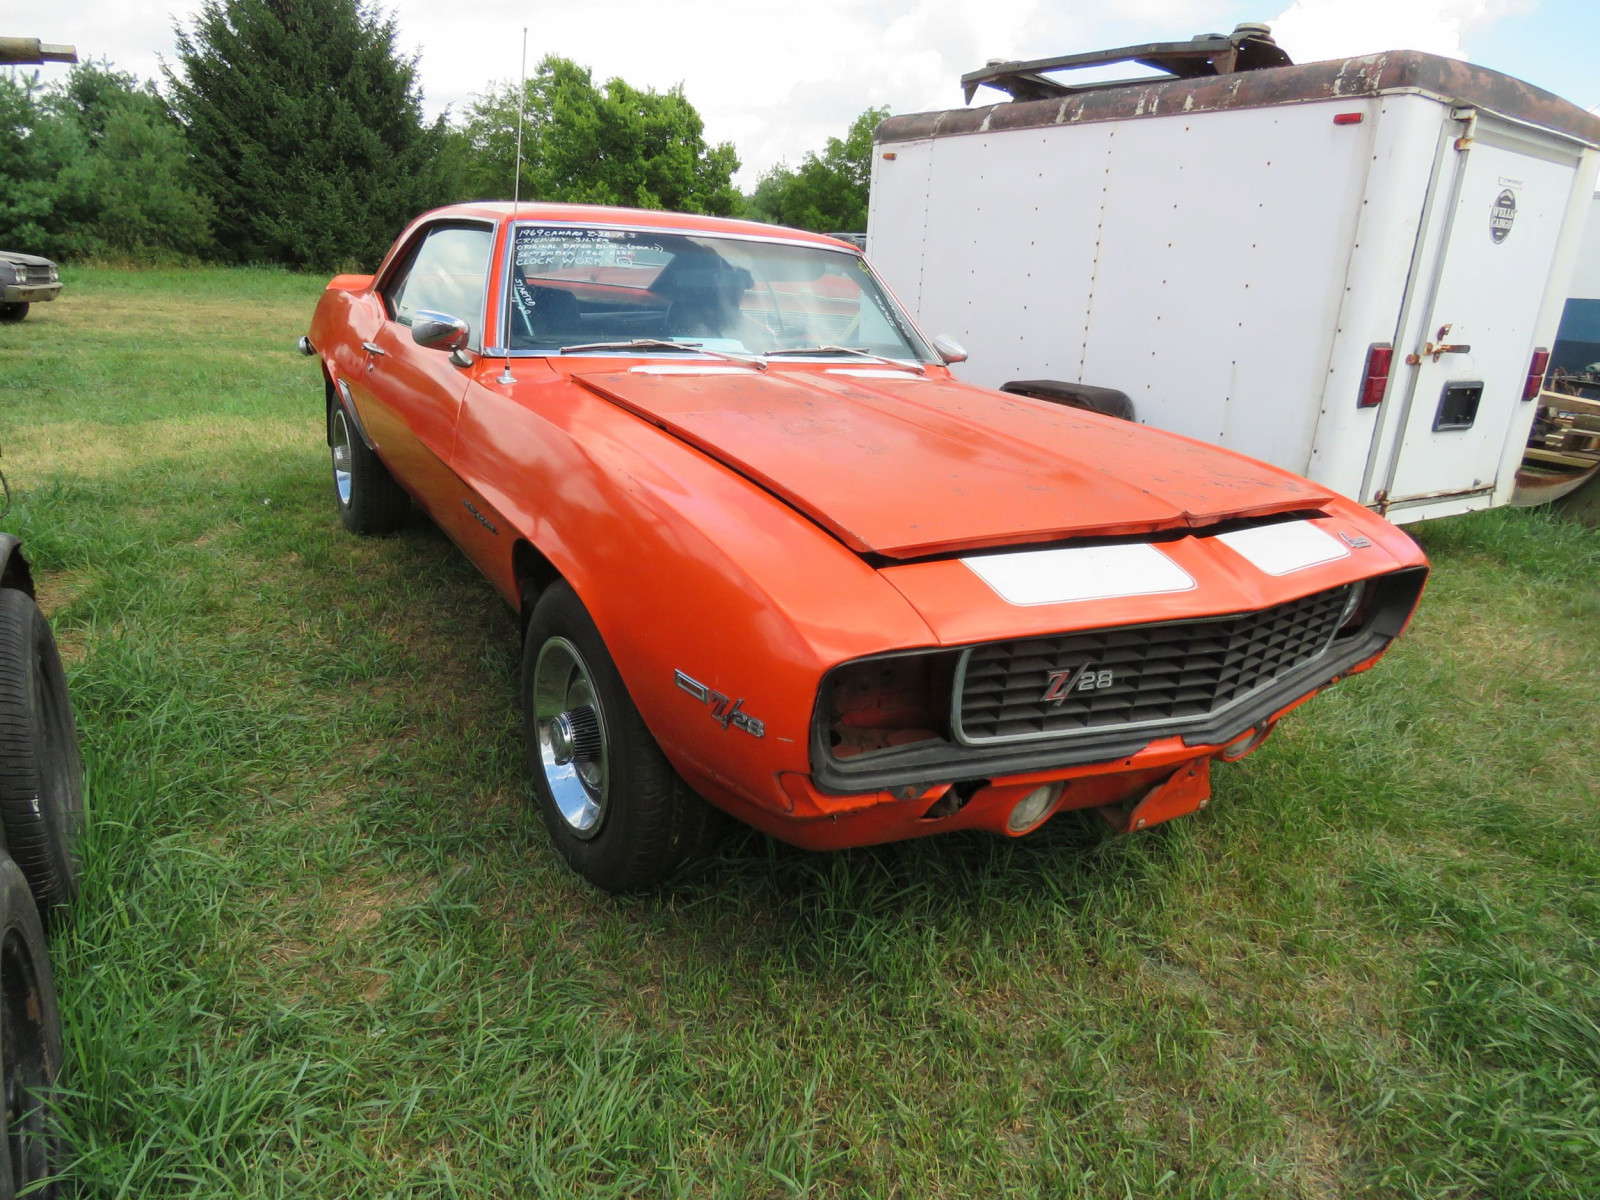 1969 Chevrolet Camaro RS Z28 Coupe - Image 4